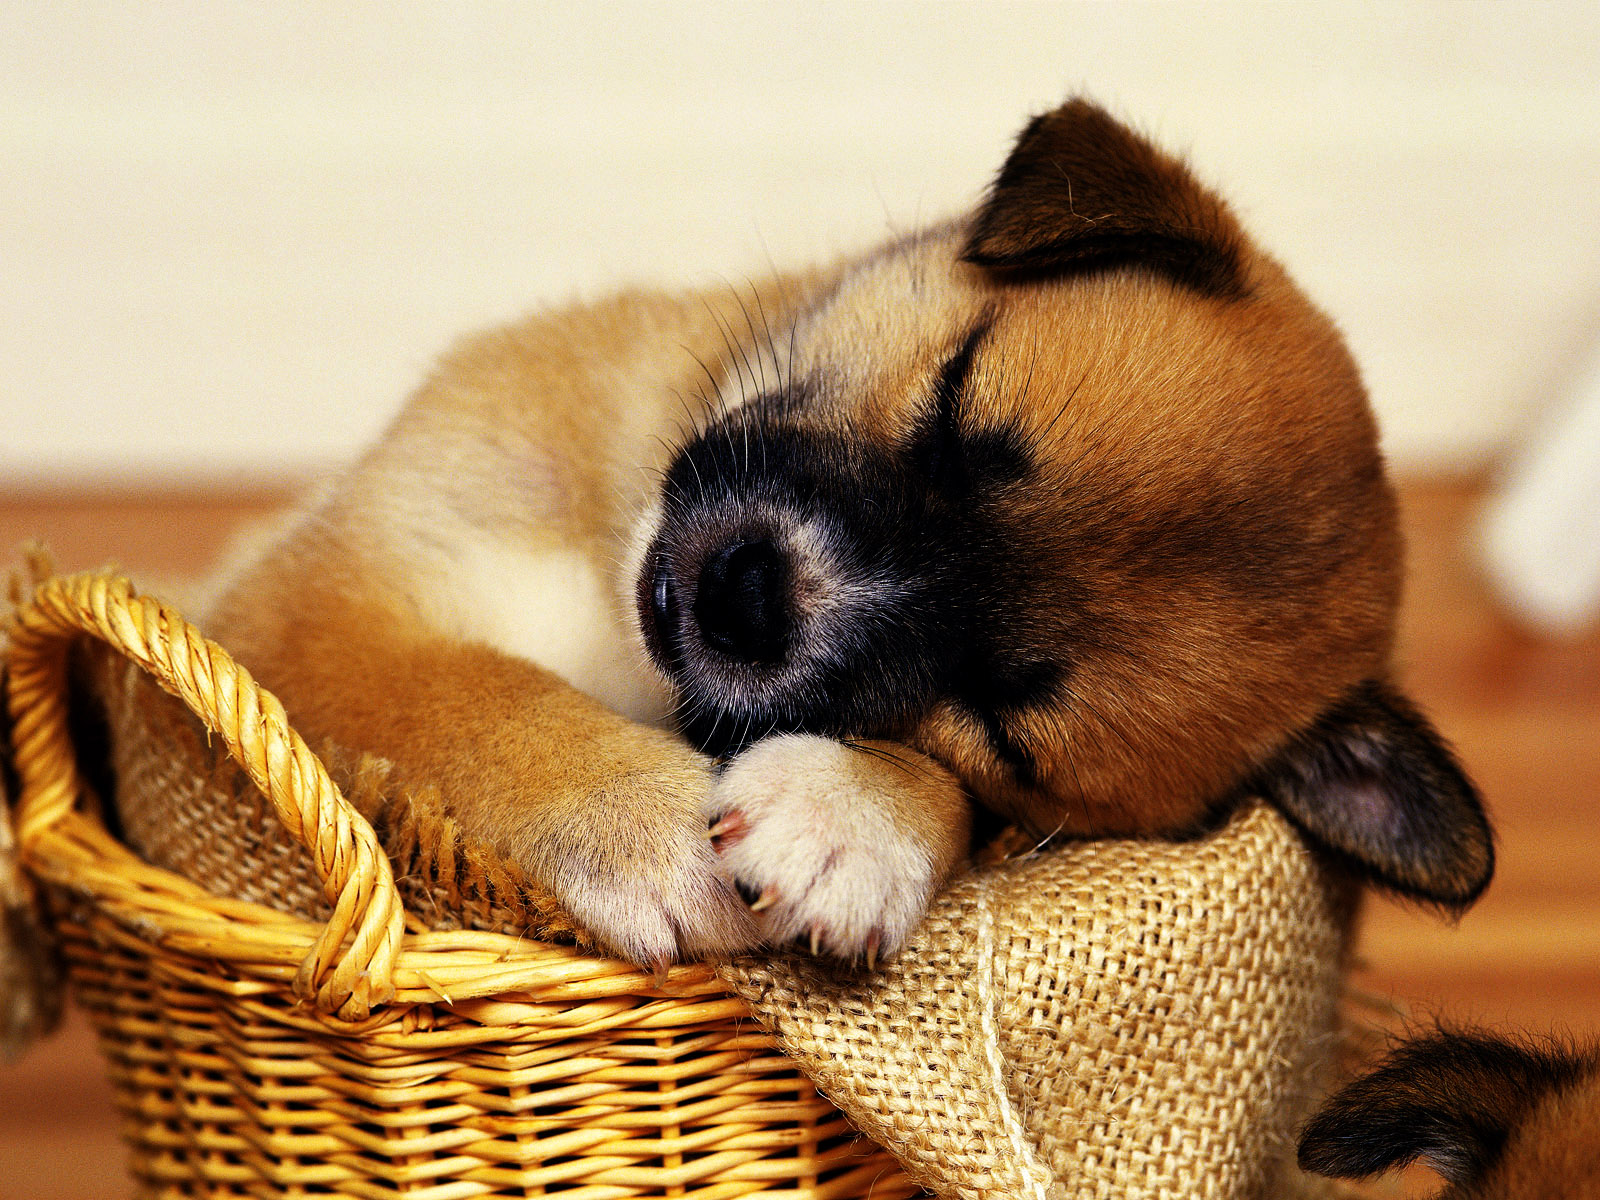 Cute Puppies HD Wallpapers Collection| HD Wallpapers ,Backgrounds ,Photos ,Pictures, Image ,PC